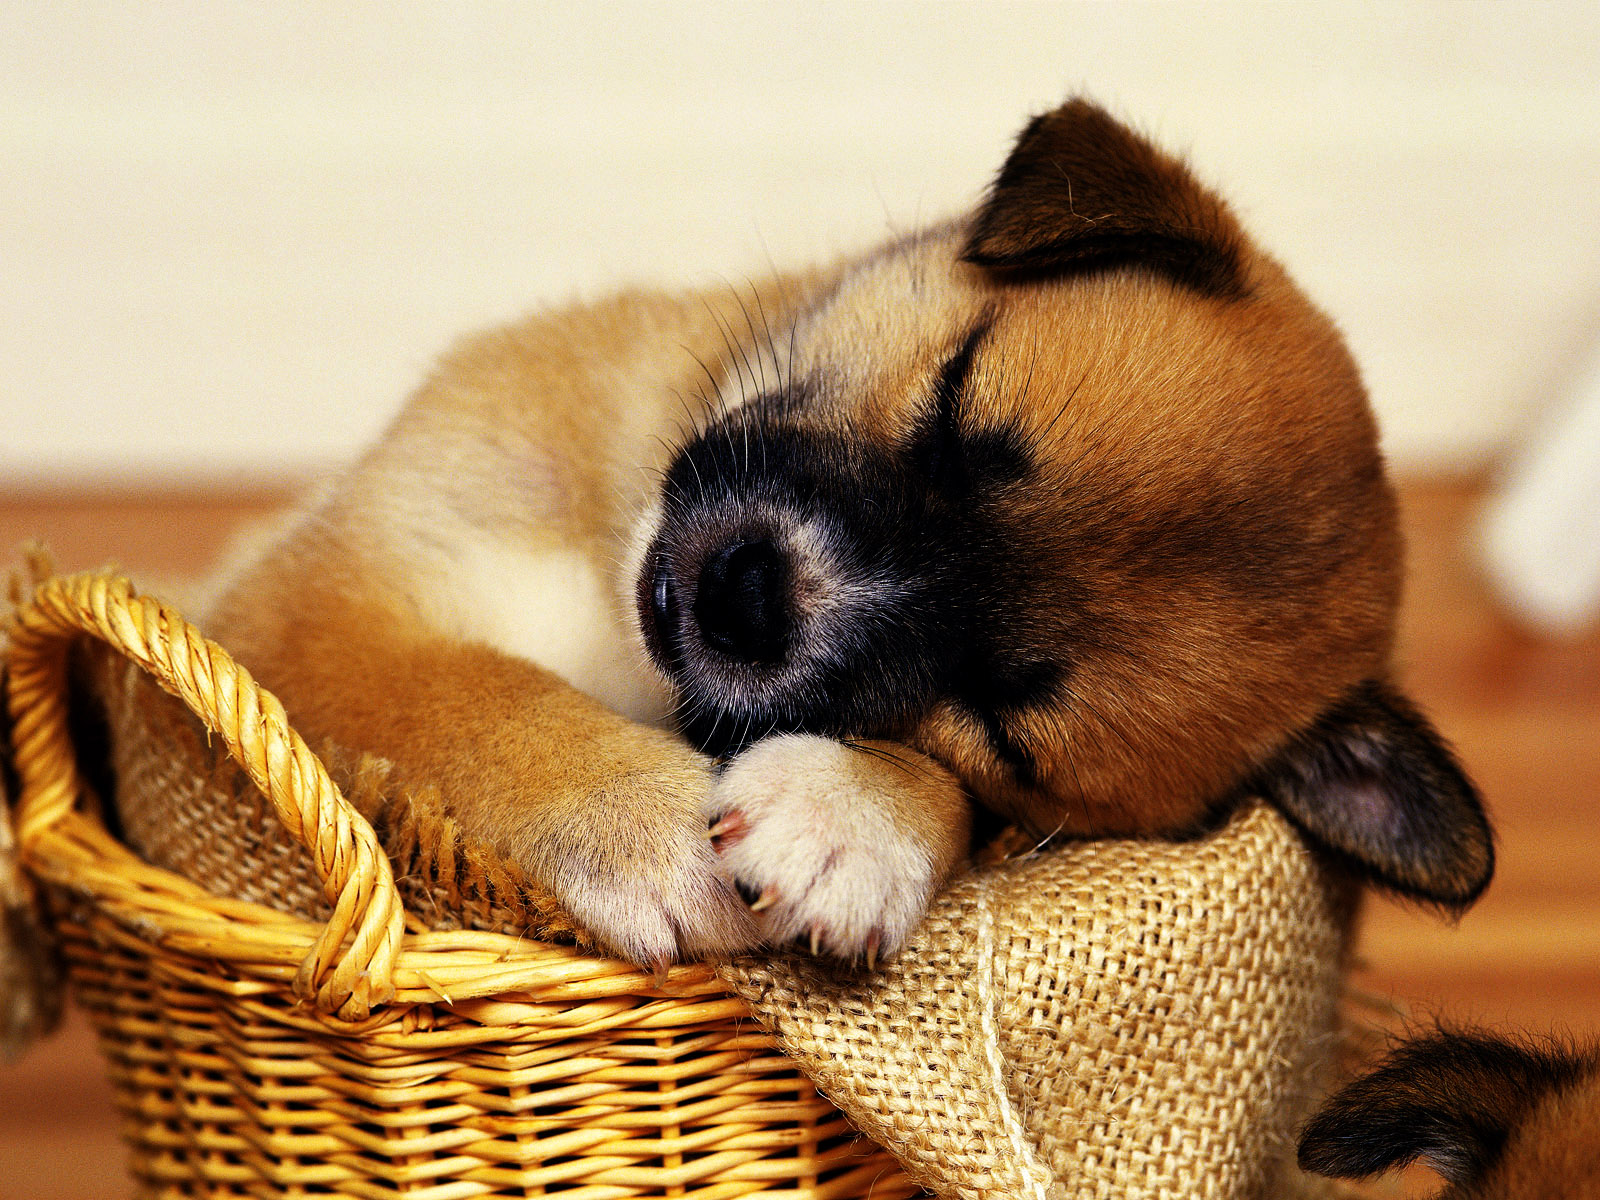 Cute Puppies HD Wallpapers Collection| HD Wallpapers ,Backgrounds ,Photos ,Pictures, Image ,PC